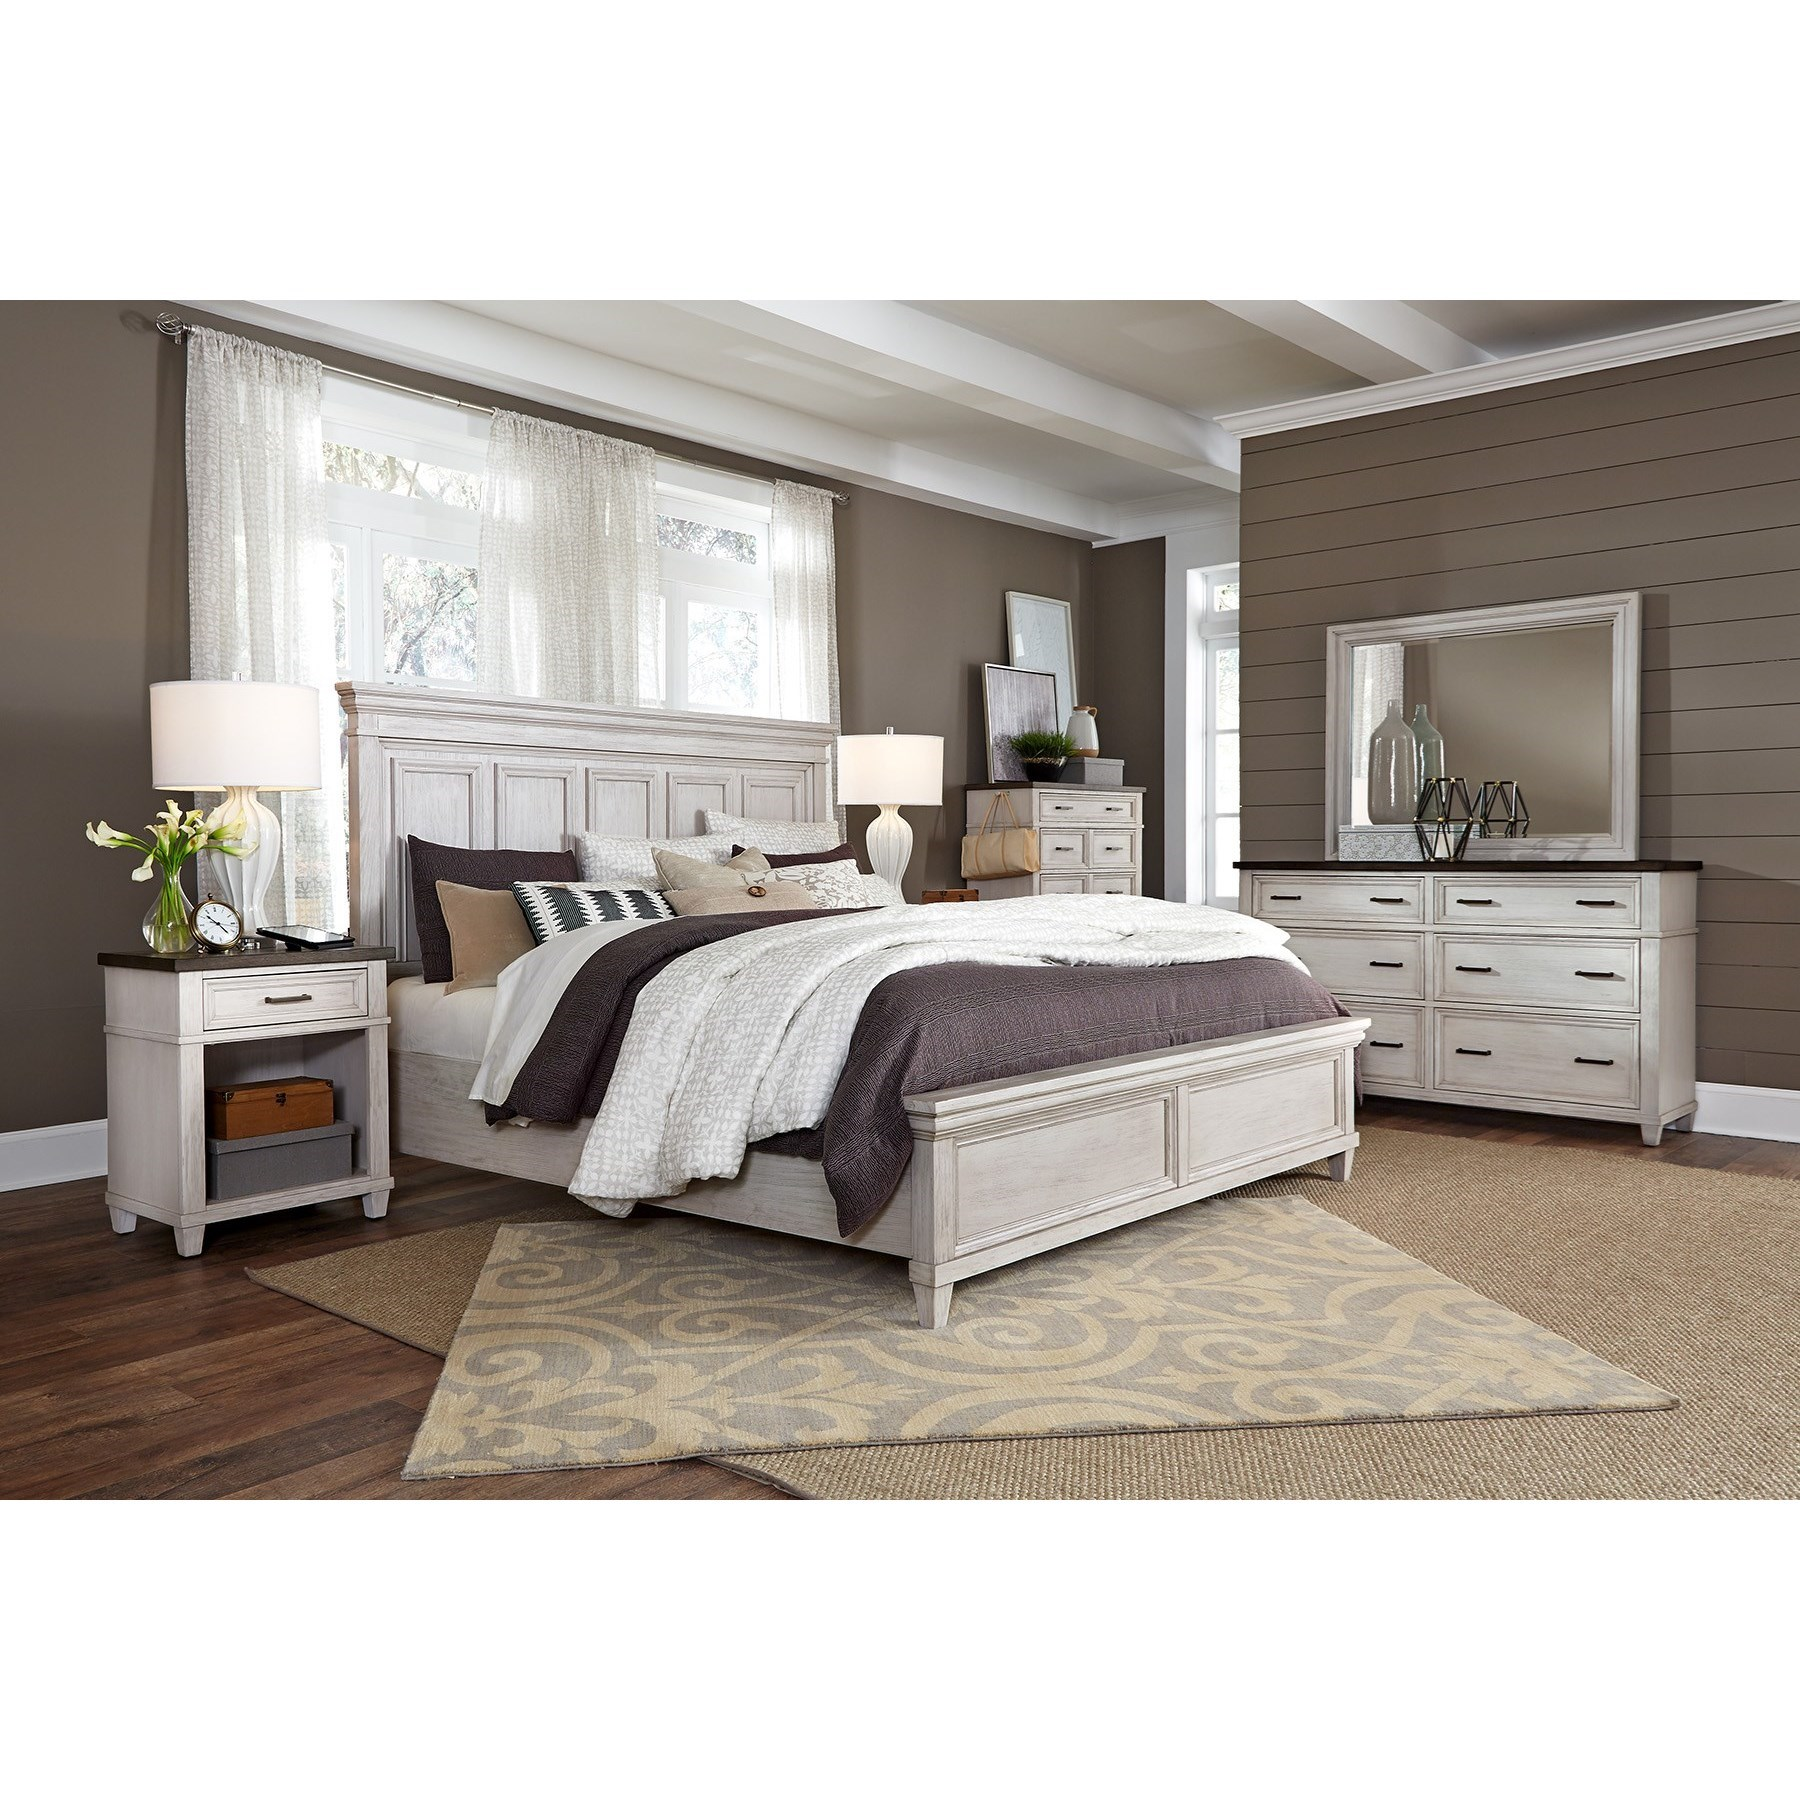 Caraway King Bedroom Group by Aspenhome at Dean Bosler's